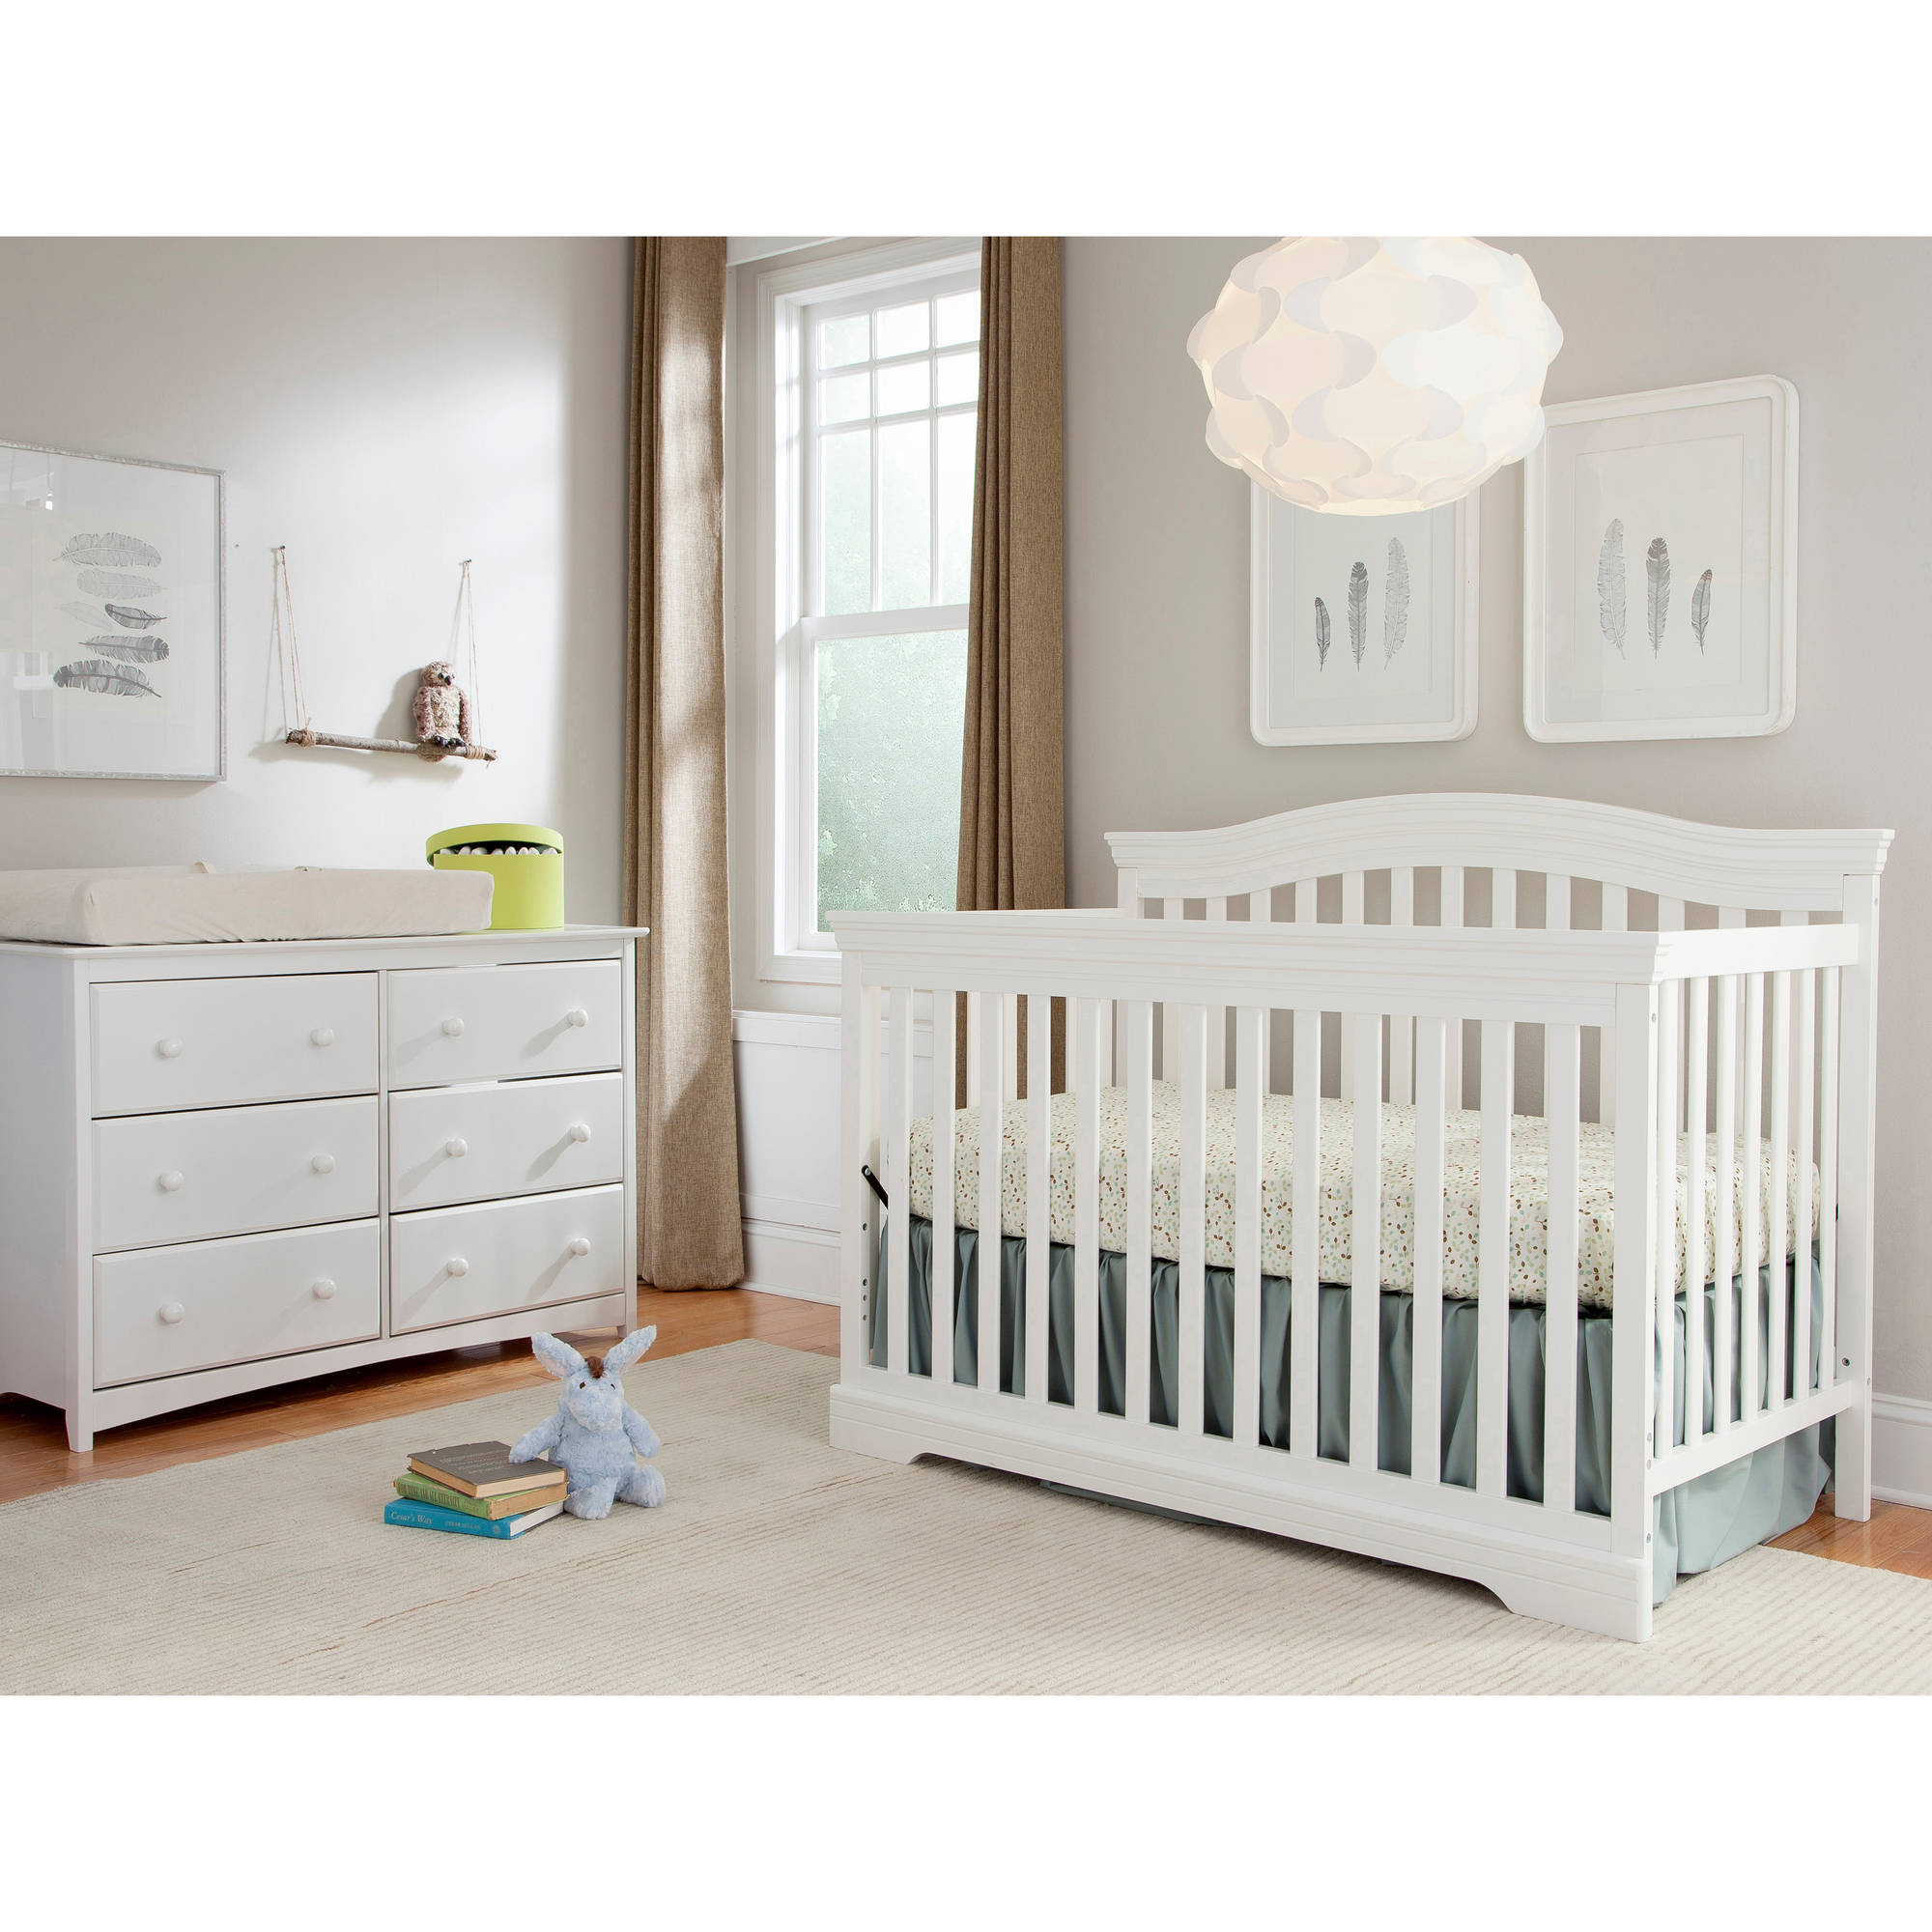 broyhill kids bowen heights 4in1 convertible crib white walmartcom